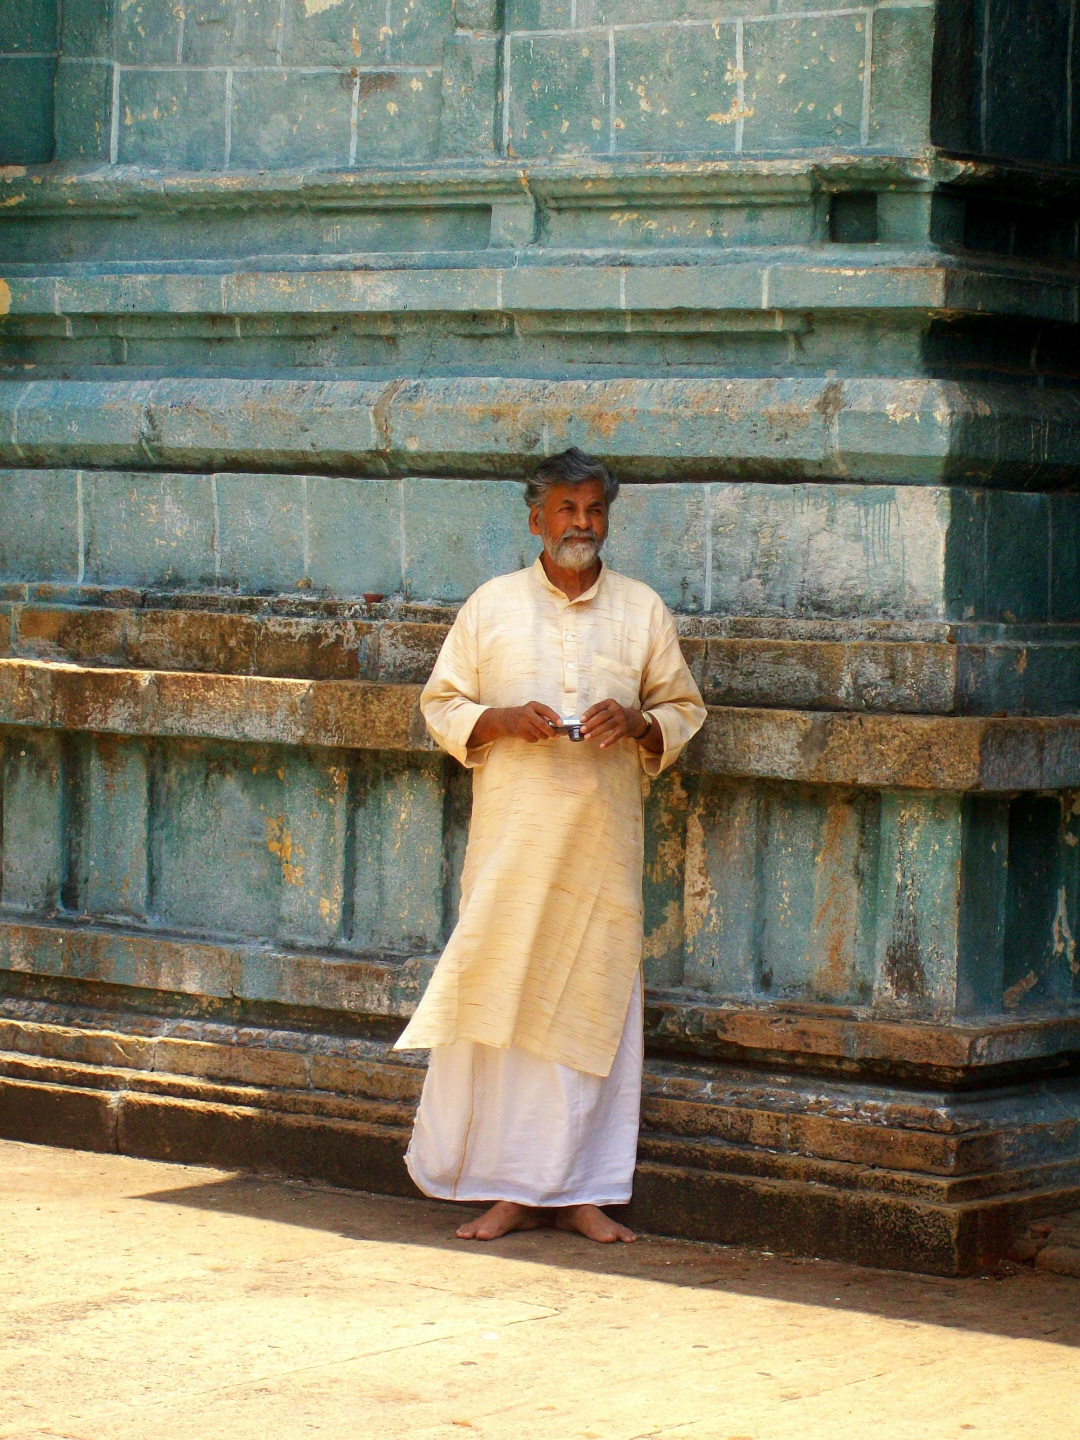 Vaithiswarankoil Temple -- Ajata in his home state of Tamil Nadu, India